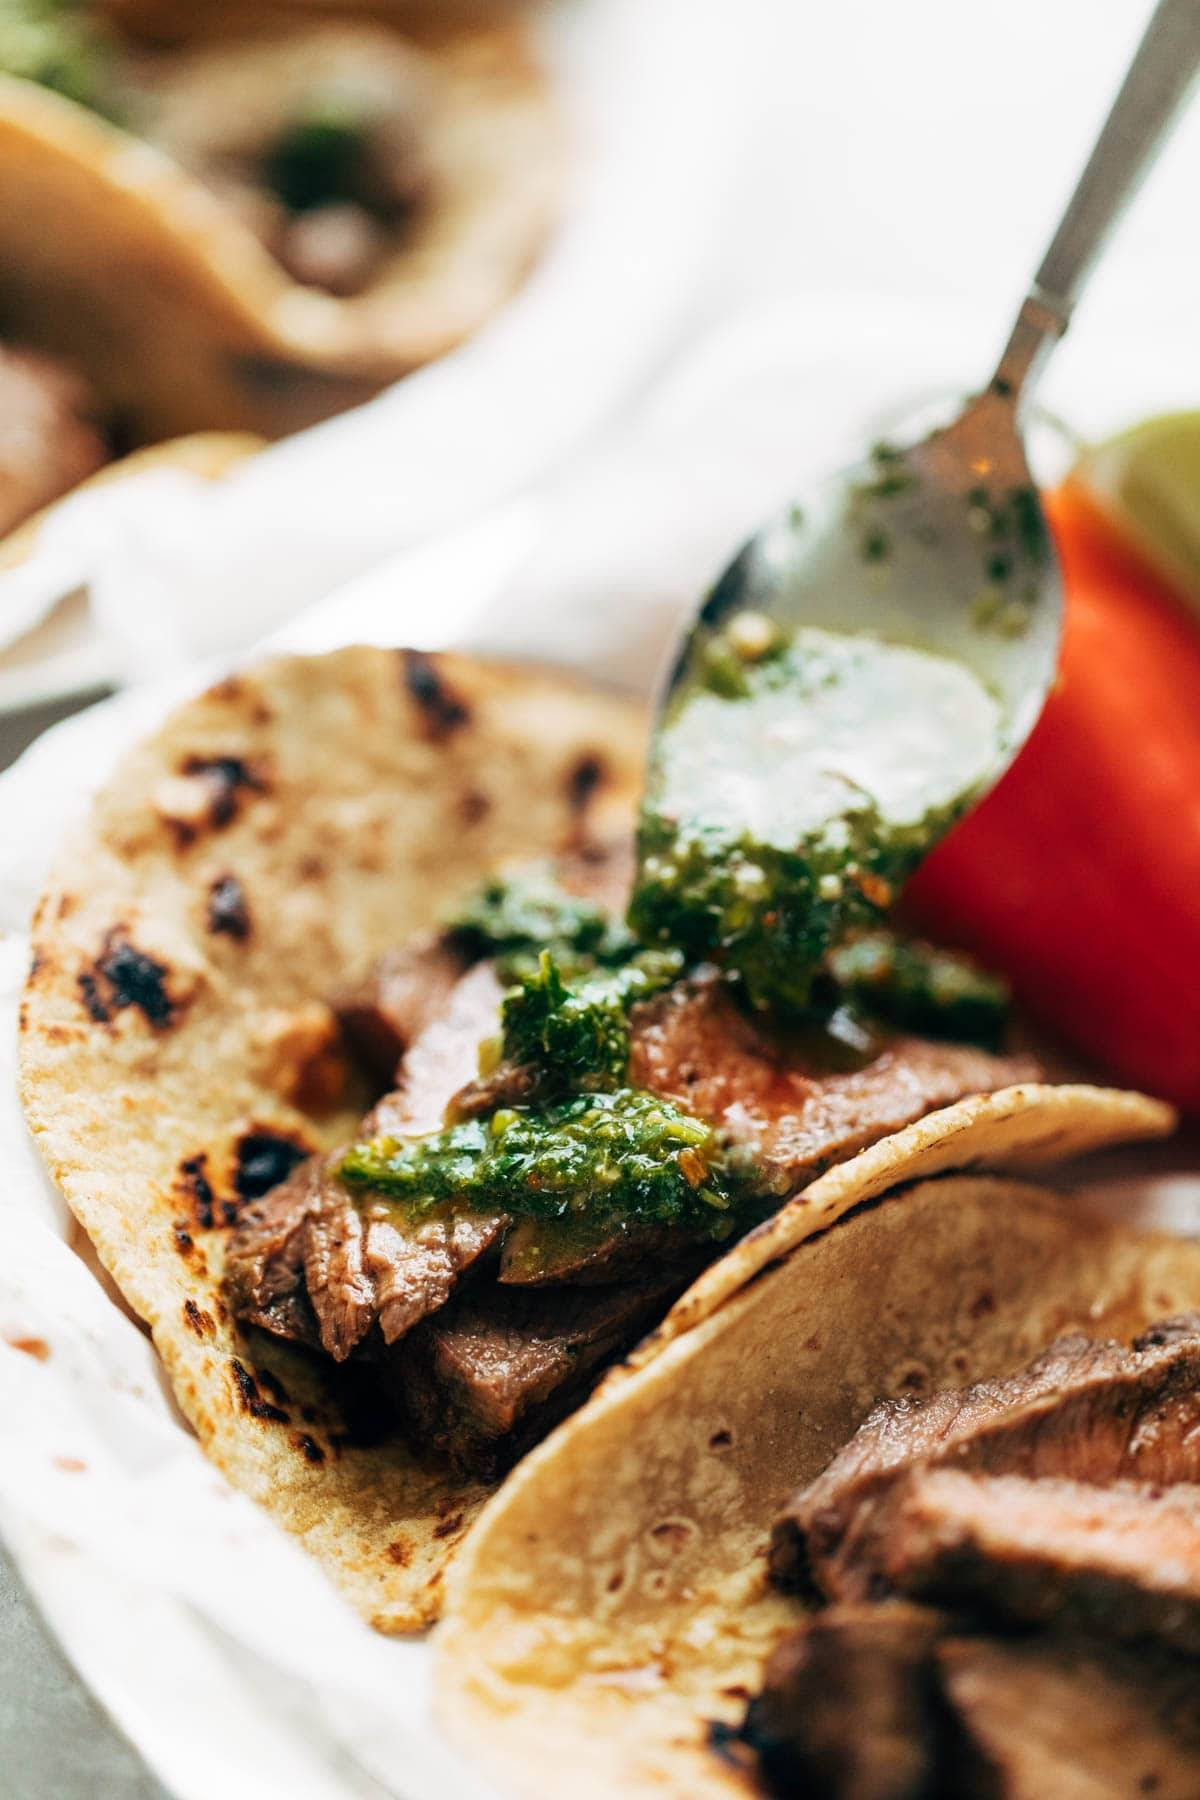 Chimichurri Steak Tacos drizzled with chimi sauce.